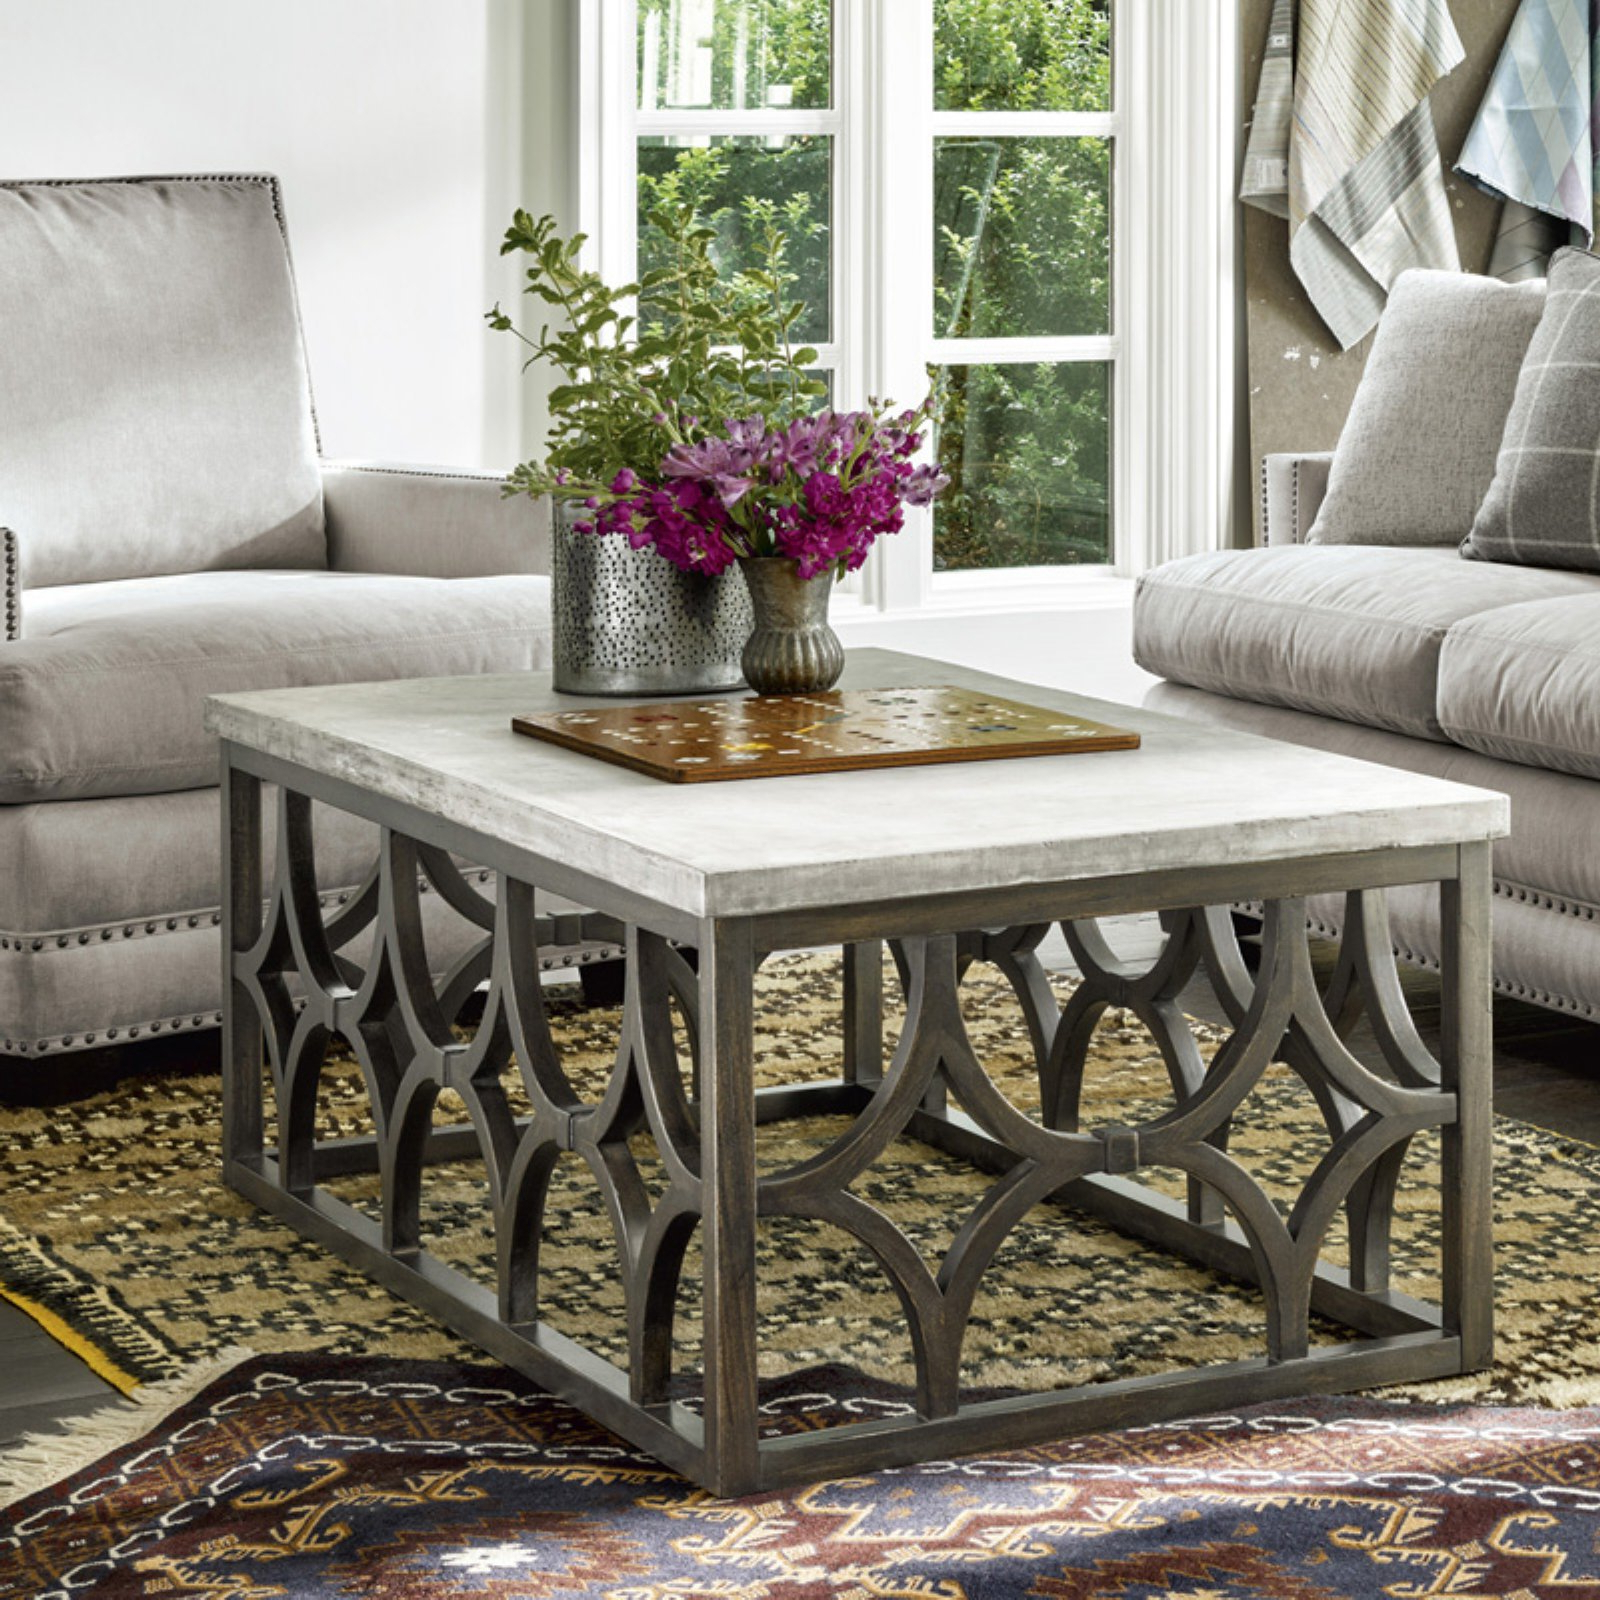 2019 The Curated Nomad Quatrefoil Goldtone Metal And Glass Coffee Tables Pertaining To Universal Furniture Foulard Cocktail Table (View 1 of 20)